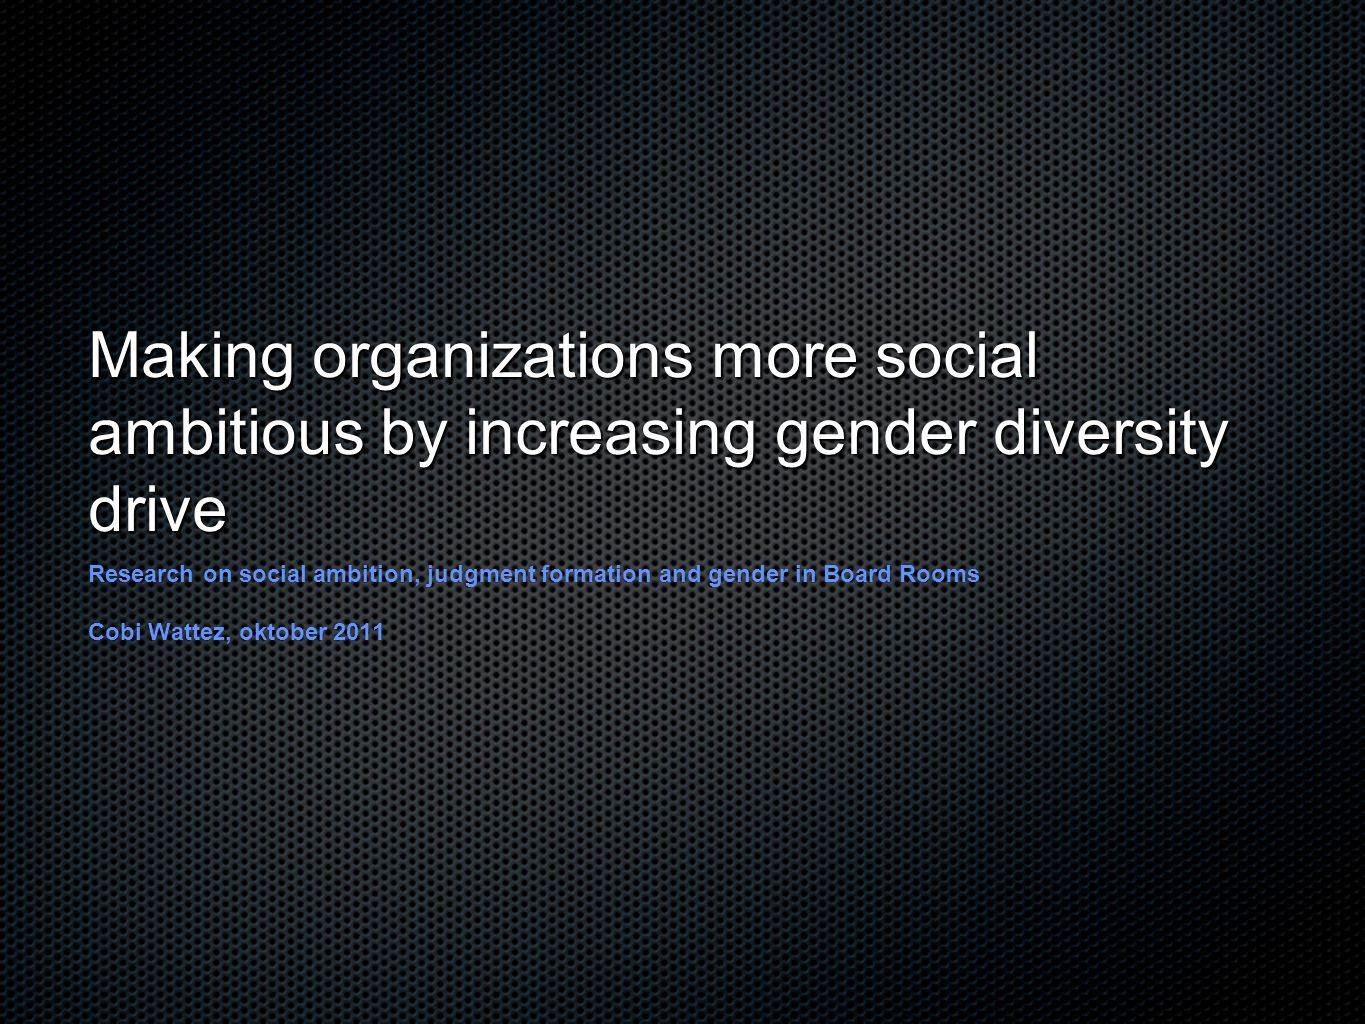 Making organizations more social ambitious by increasing gender diversity drive